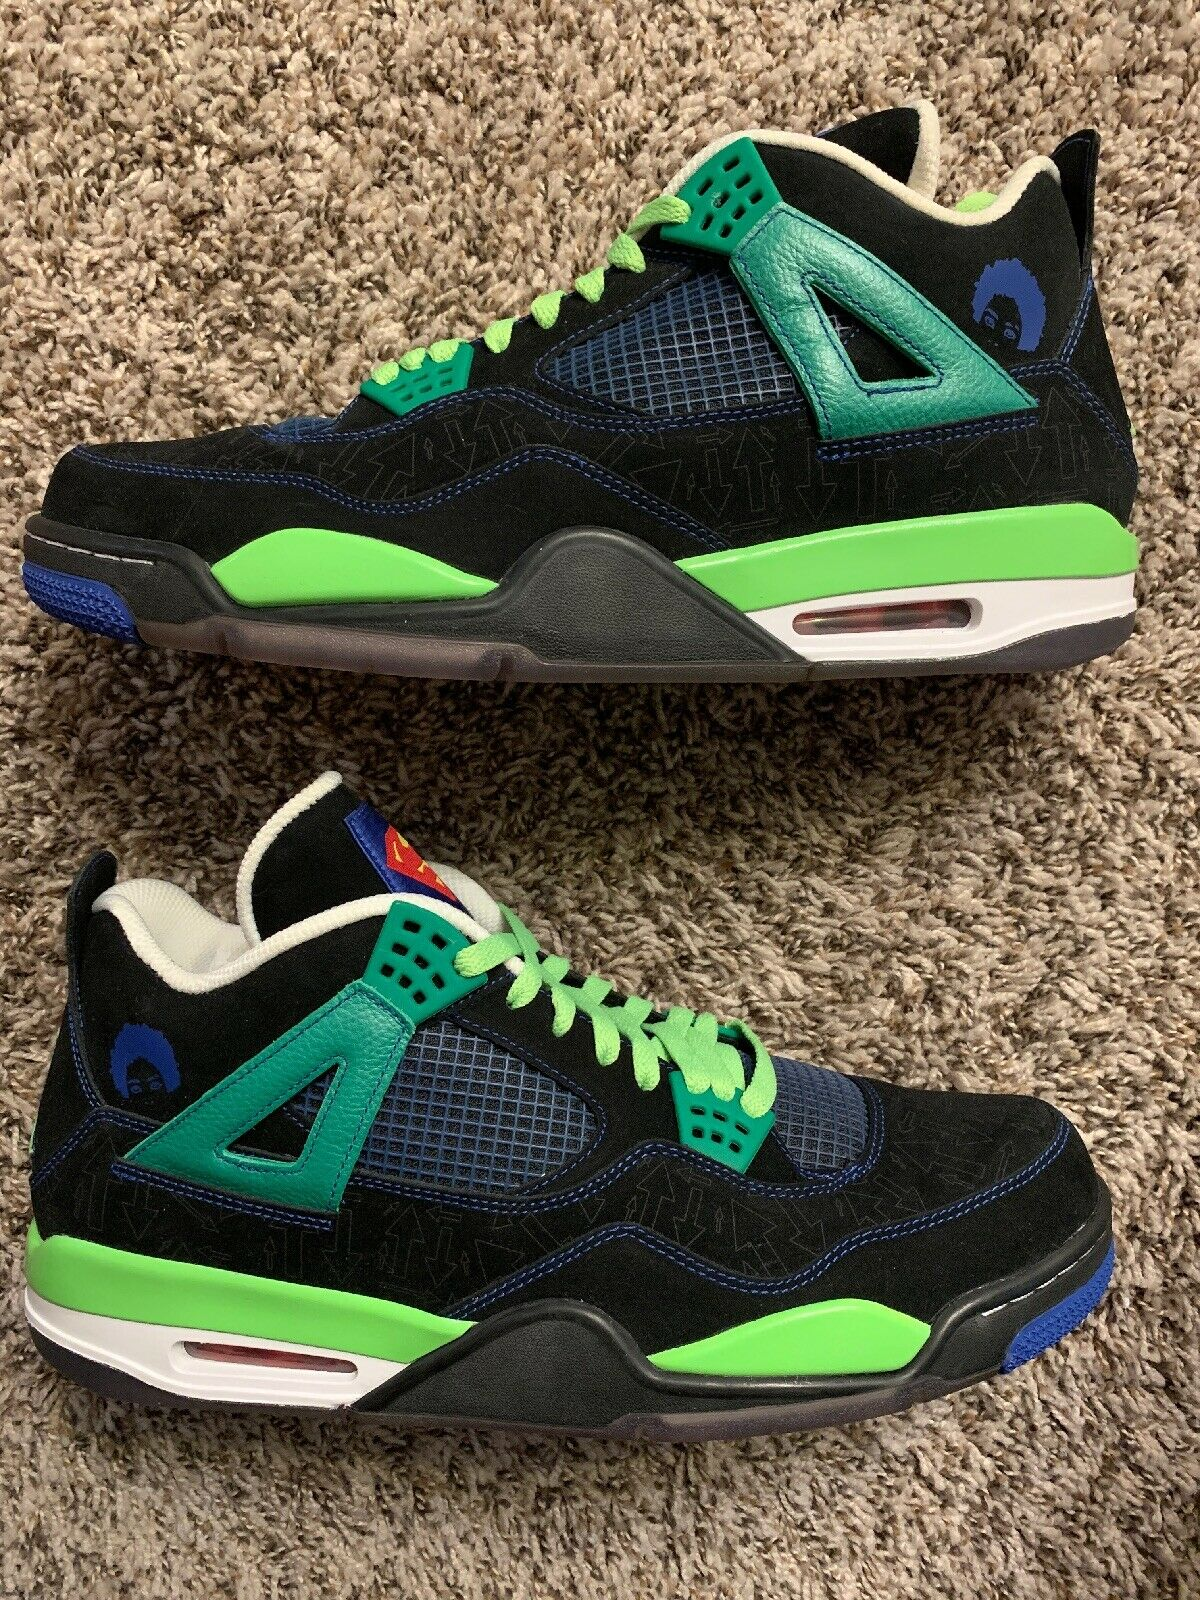 Air Jordan 4 IV Doernbecher Superman 5 6 7 8 9 12 13